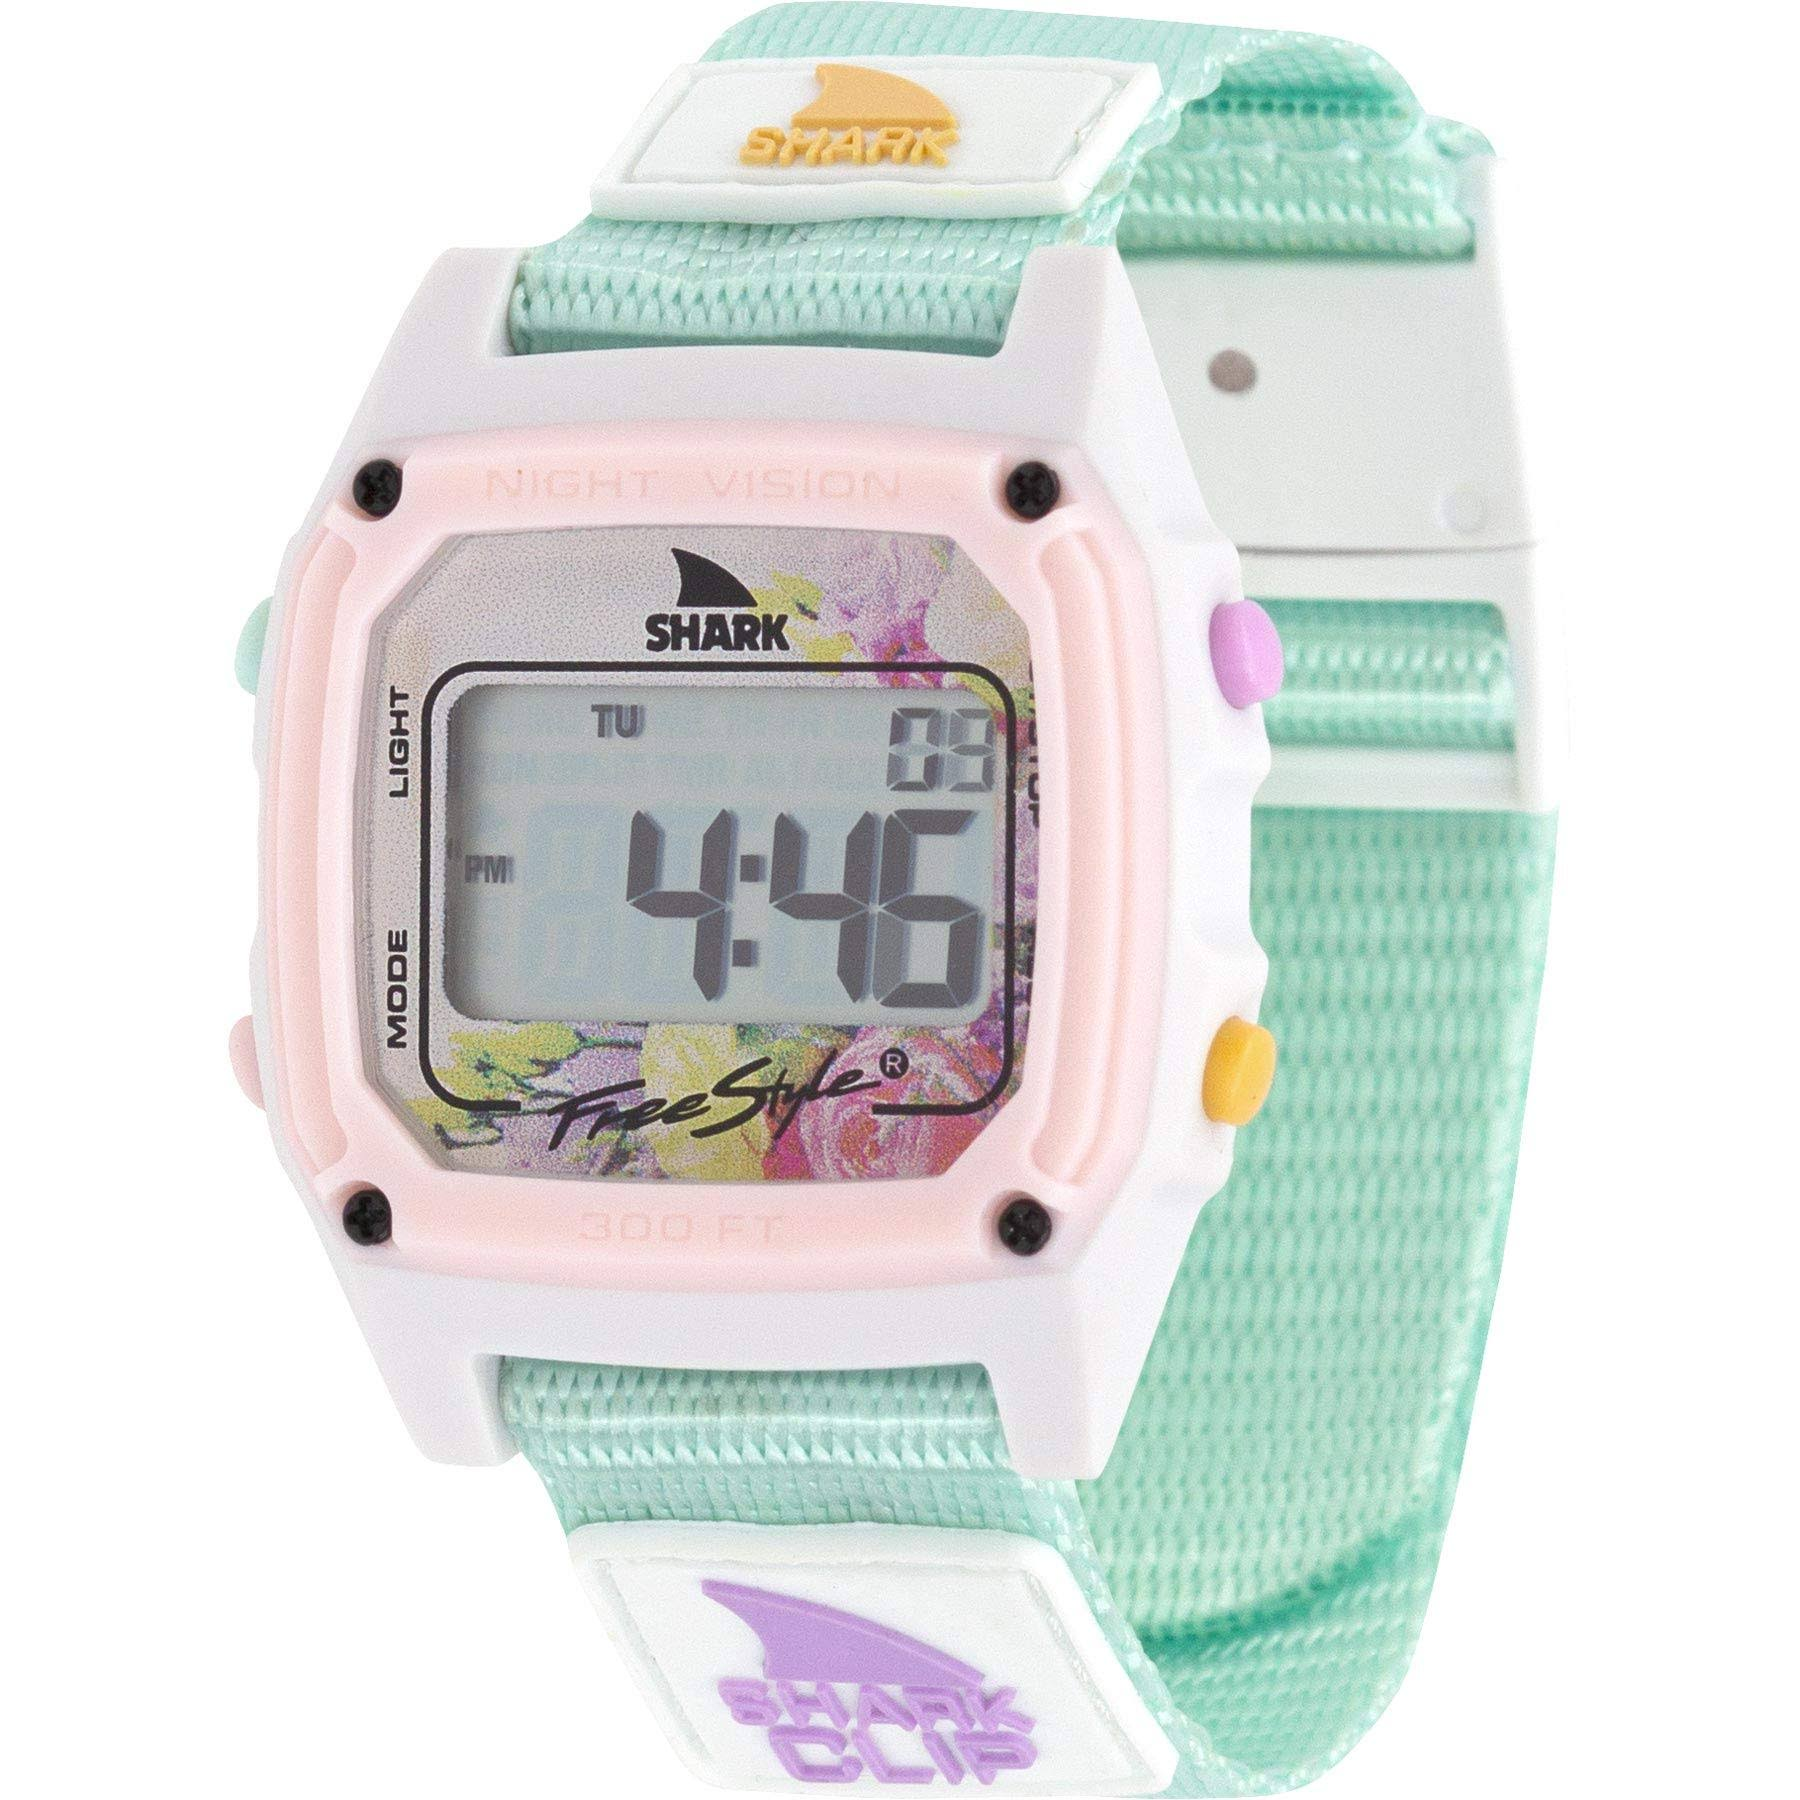 Freestyle Shark Classic Clip Watch Mint Blush